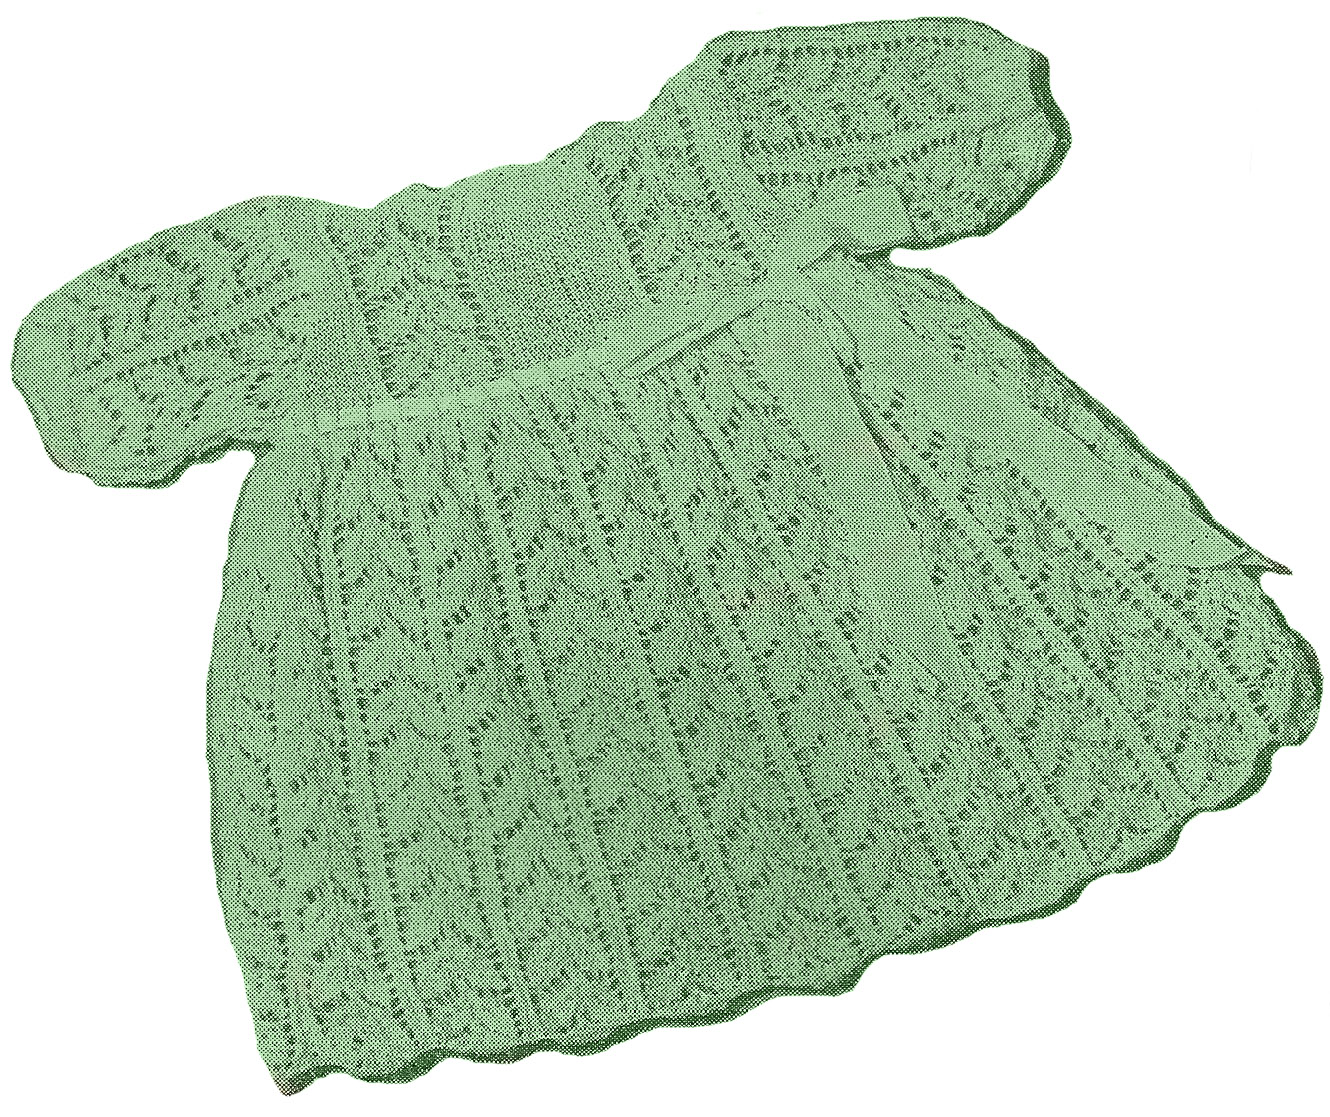 Sentimental Baby Vintage Knit Patterns For Babies